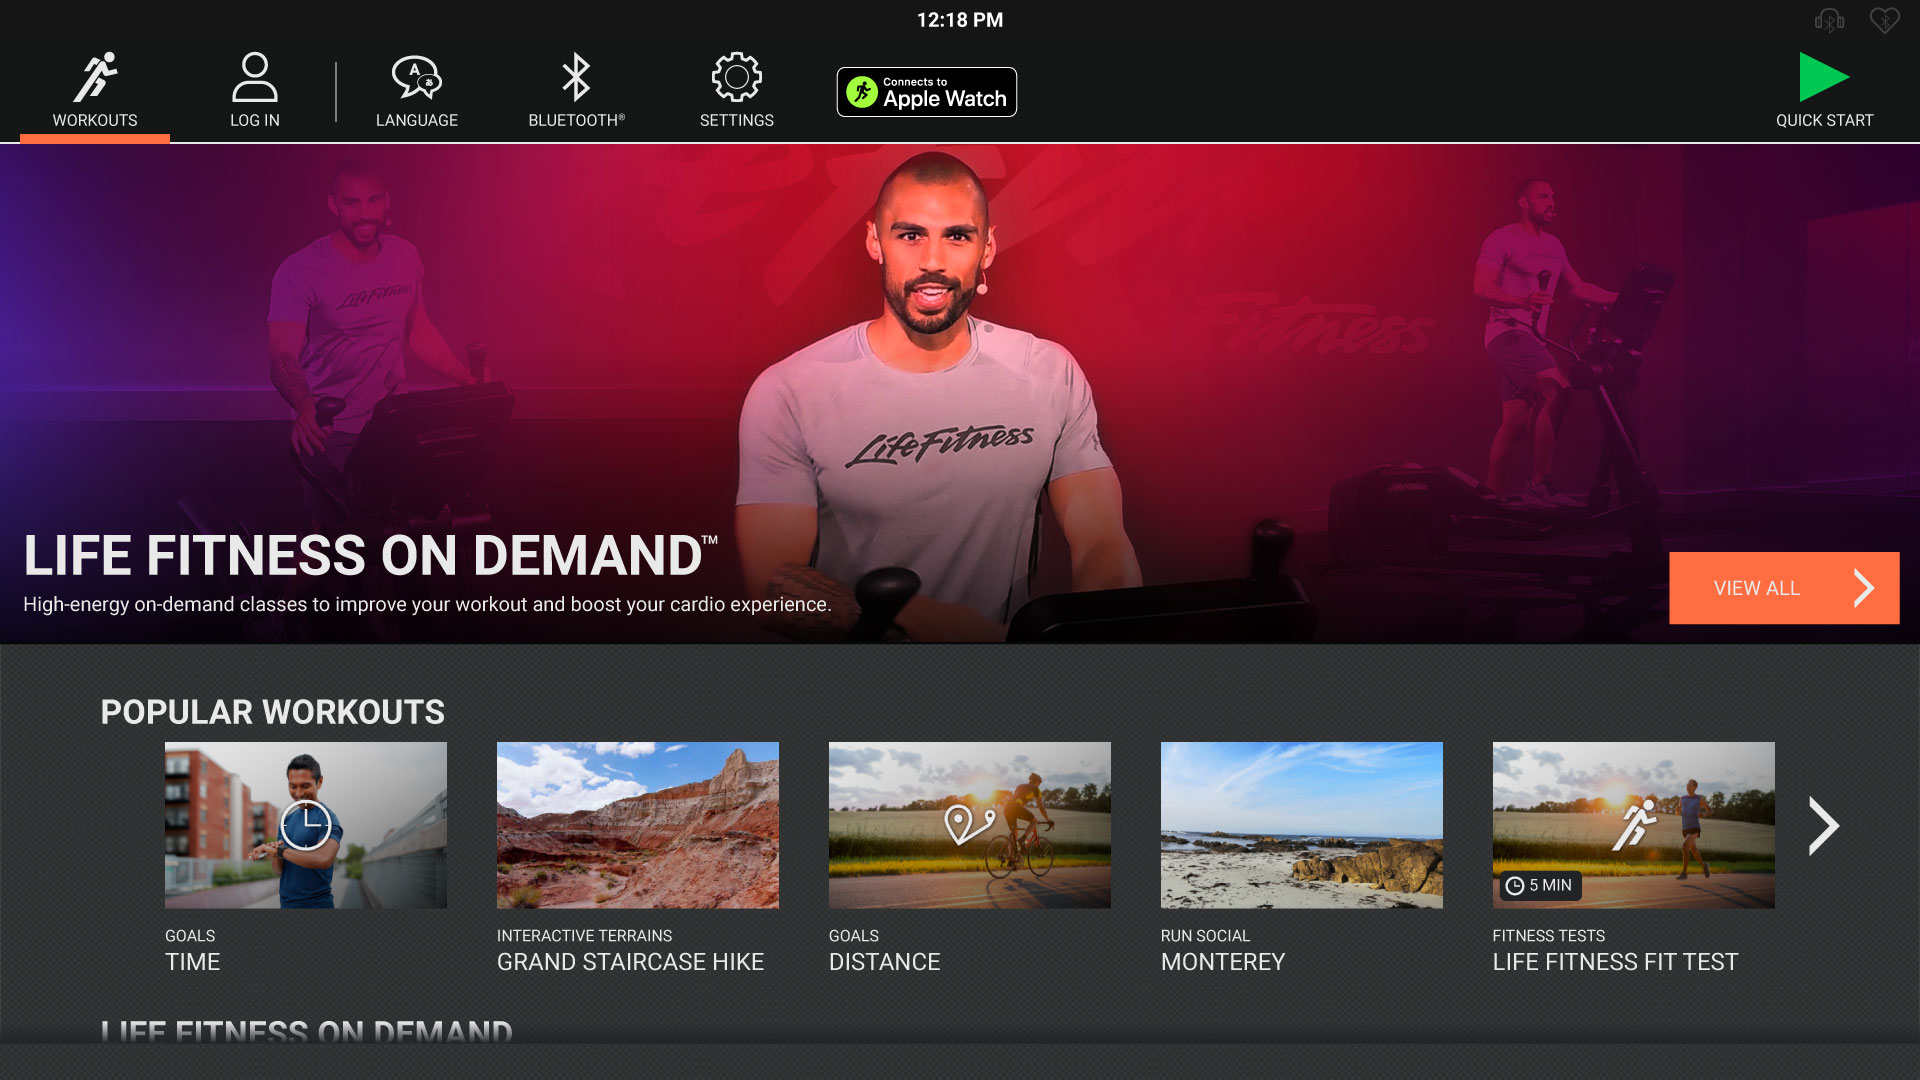 The new Life Fitness On Demand™ navigation screen, coming soon to premium cardio products.